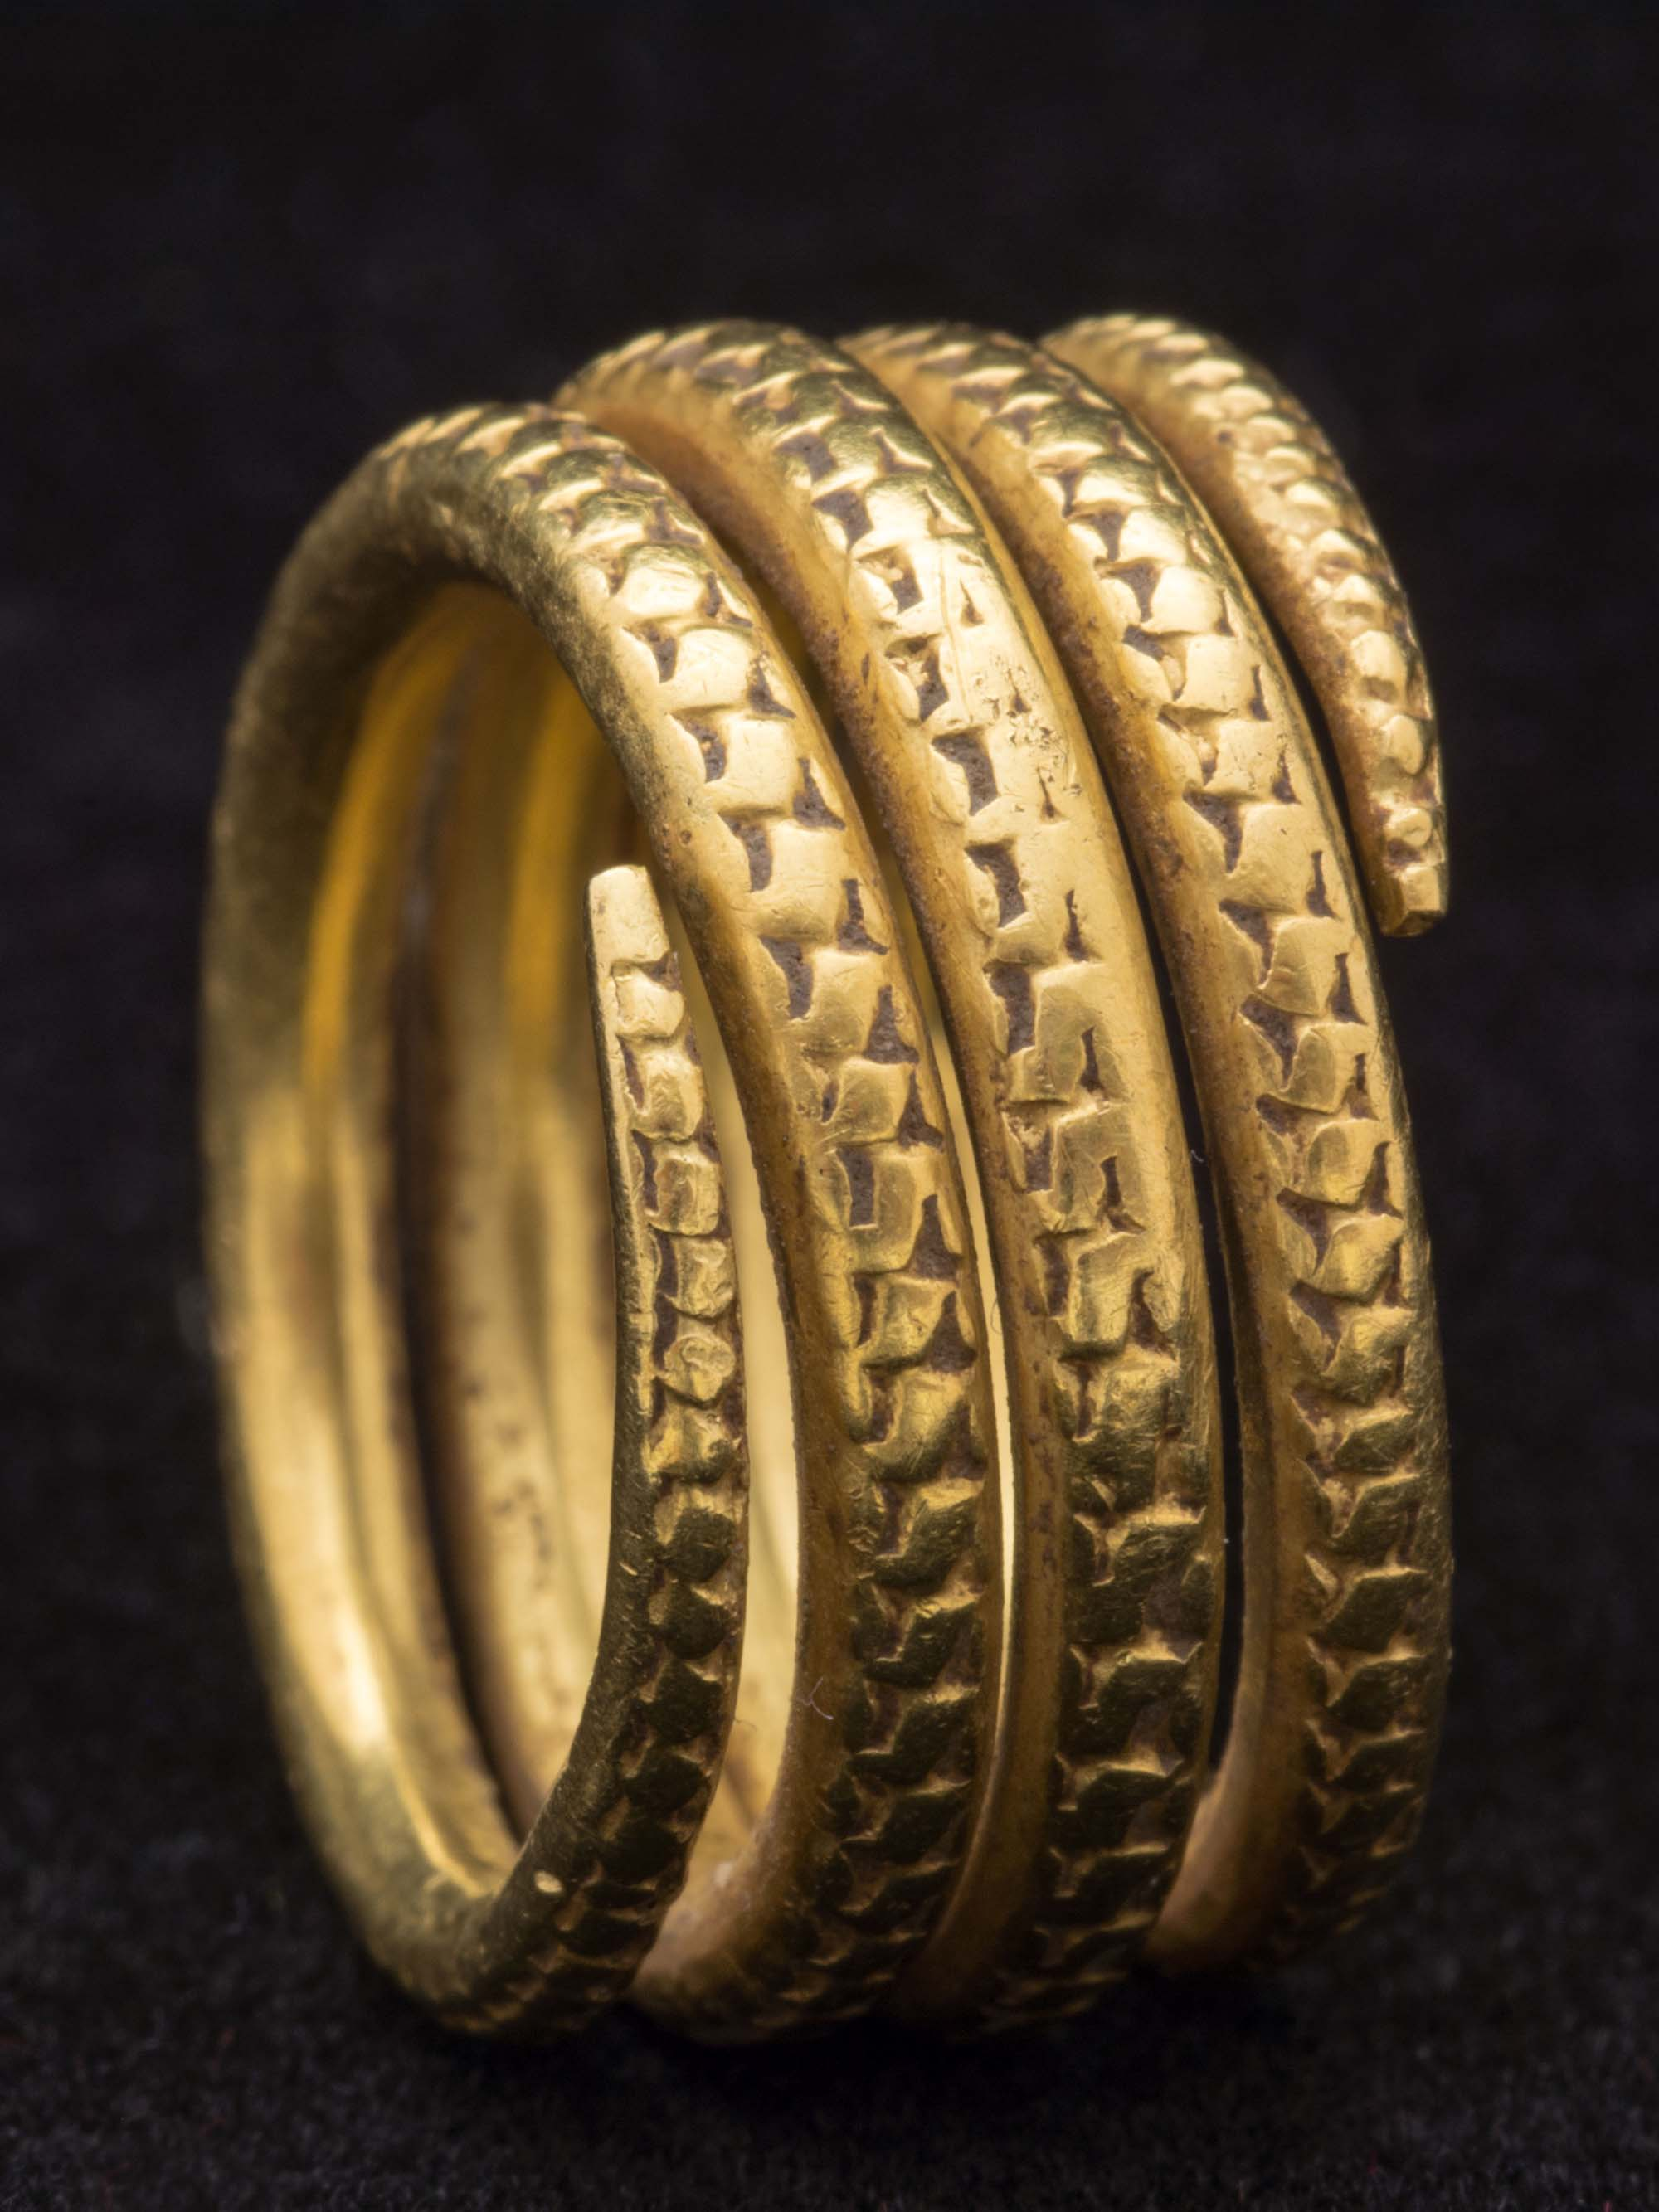 a photo of a gold coiled ring